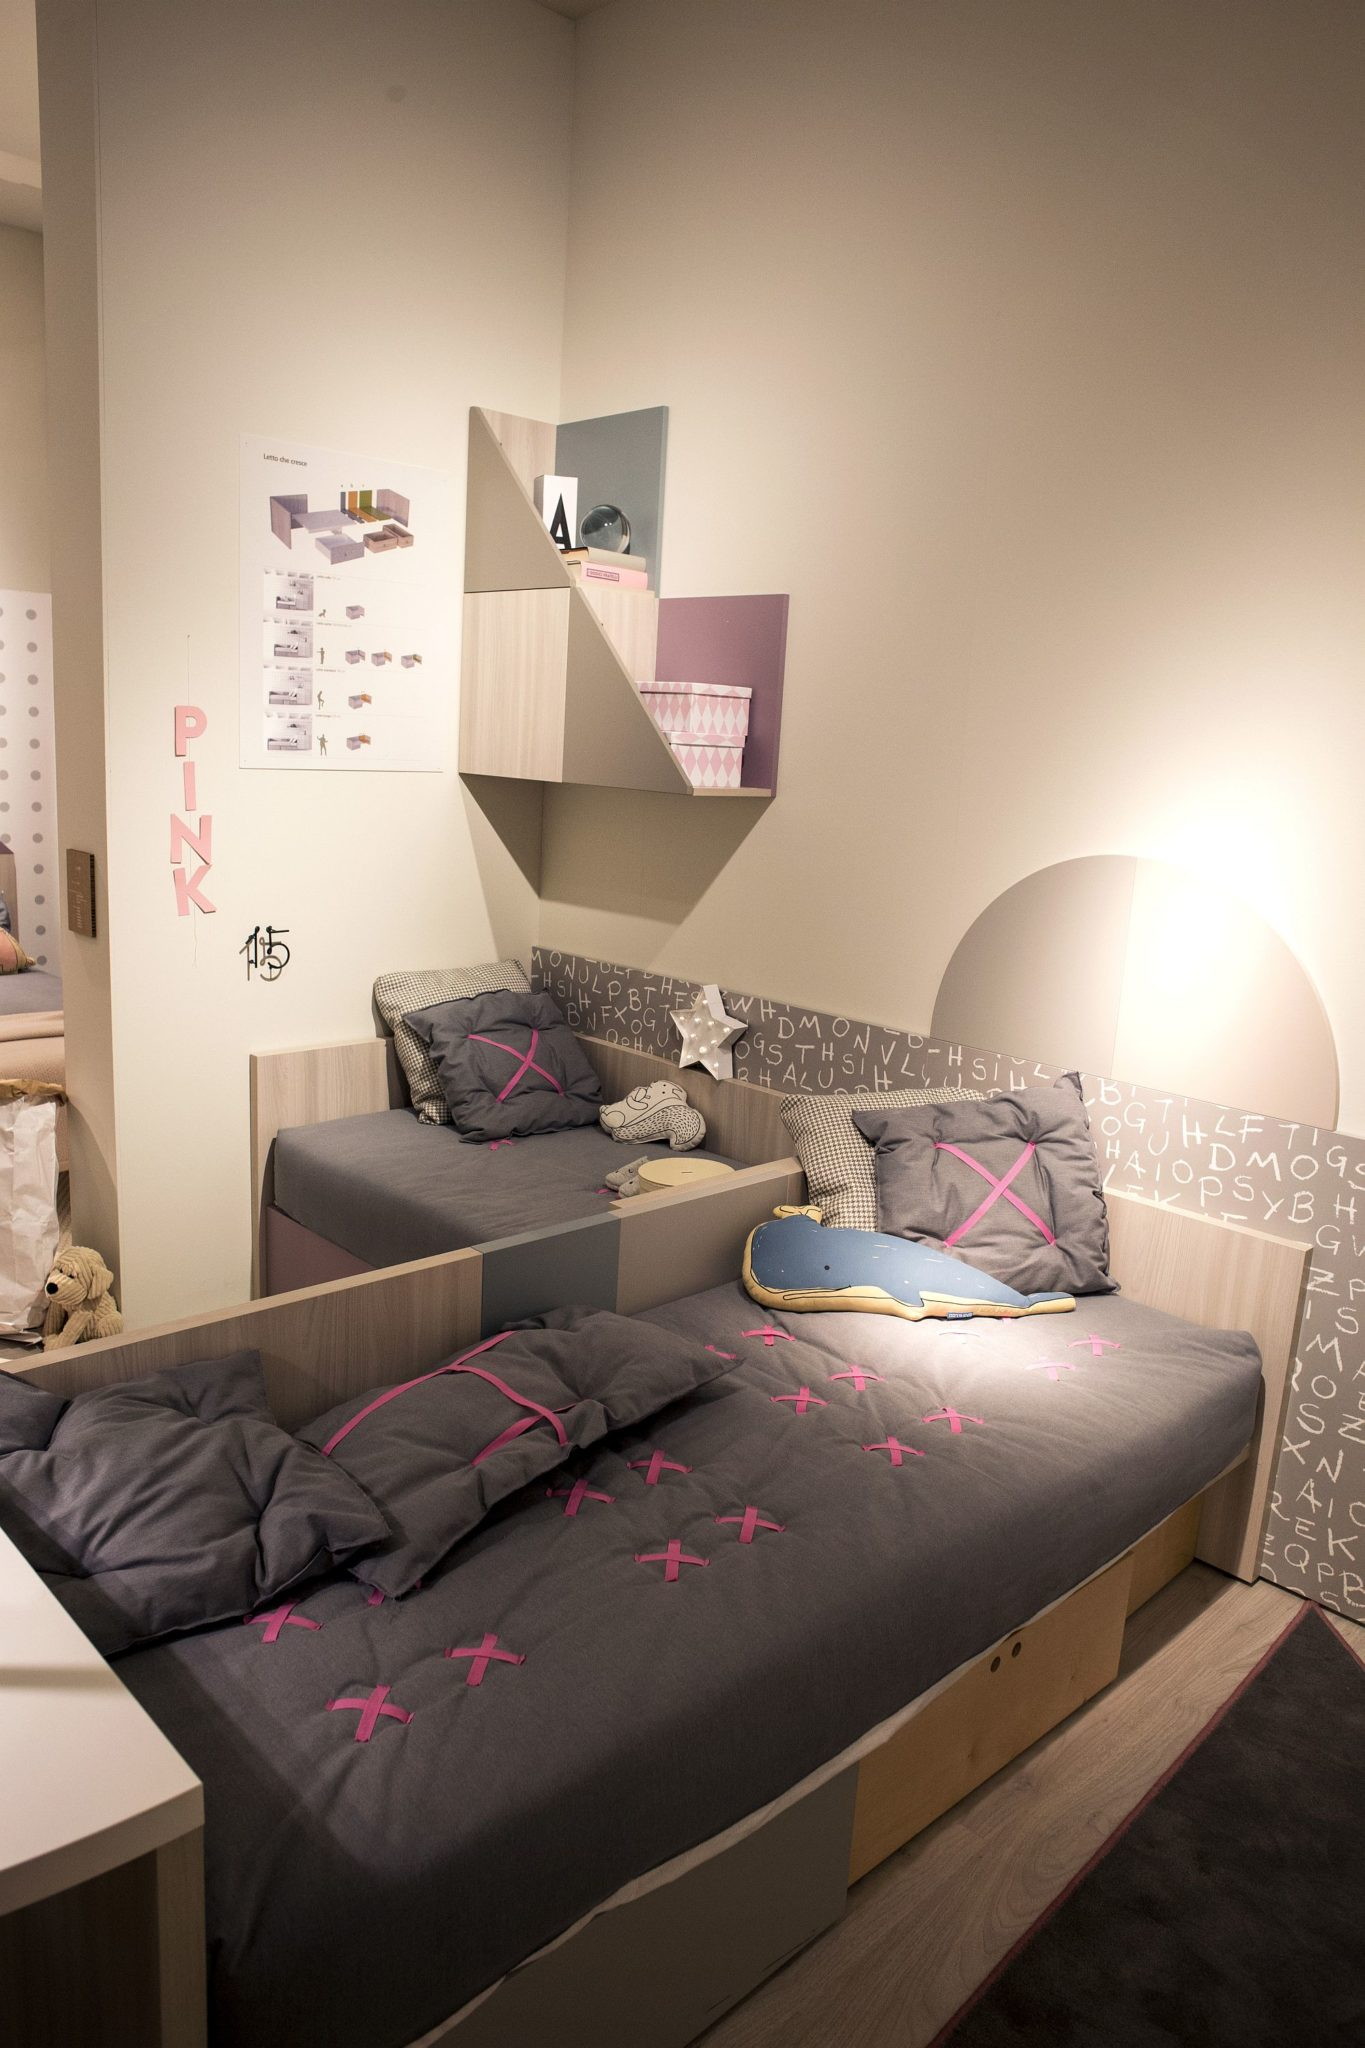 Designs For Small Rooms: 50 Latest Kids' Bedroom Decorating And Furniture Ideas